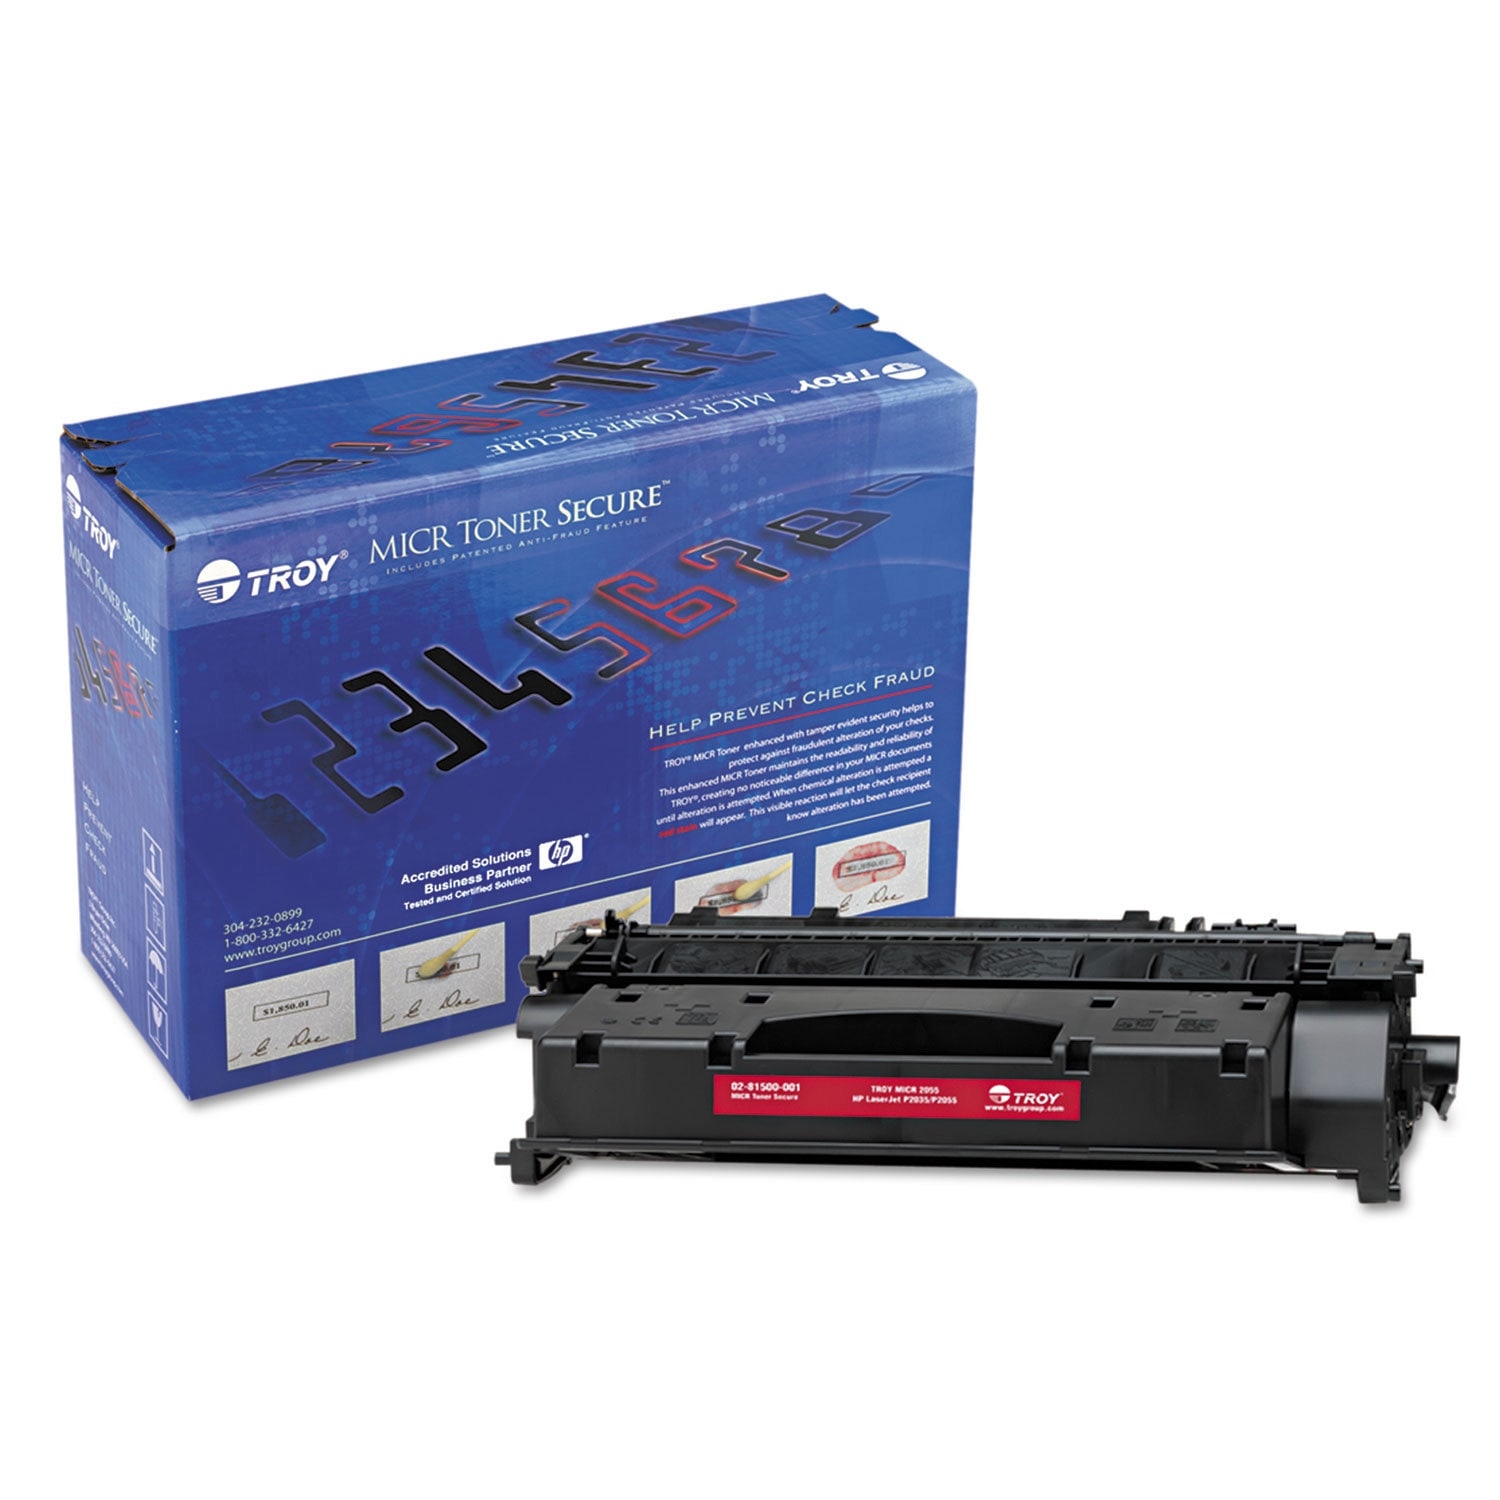 Troy 0281501001 05X Compatible Micr Toner Secure High-Yie...